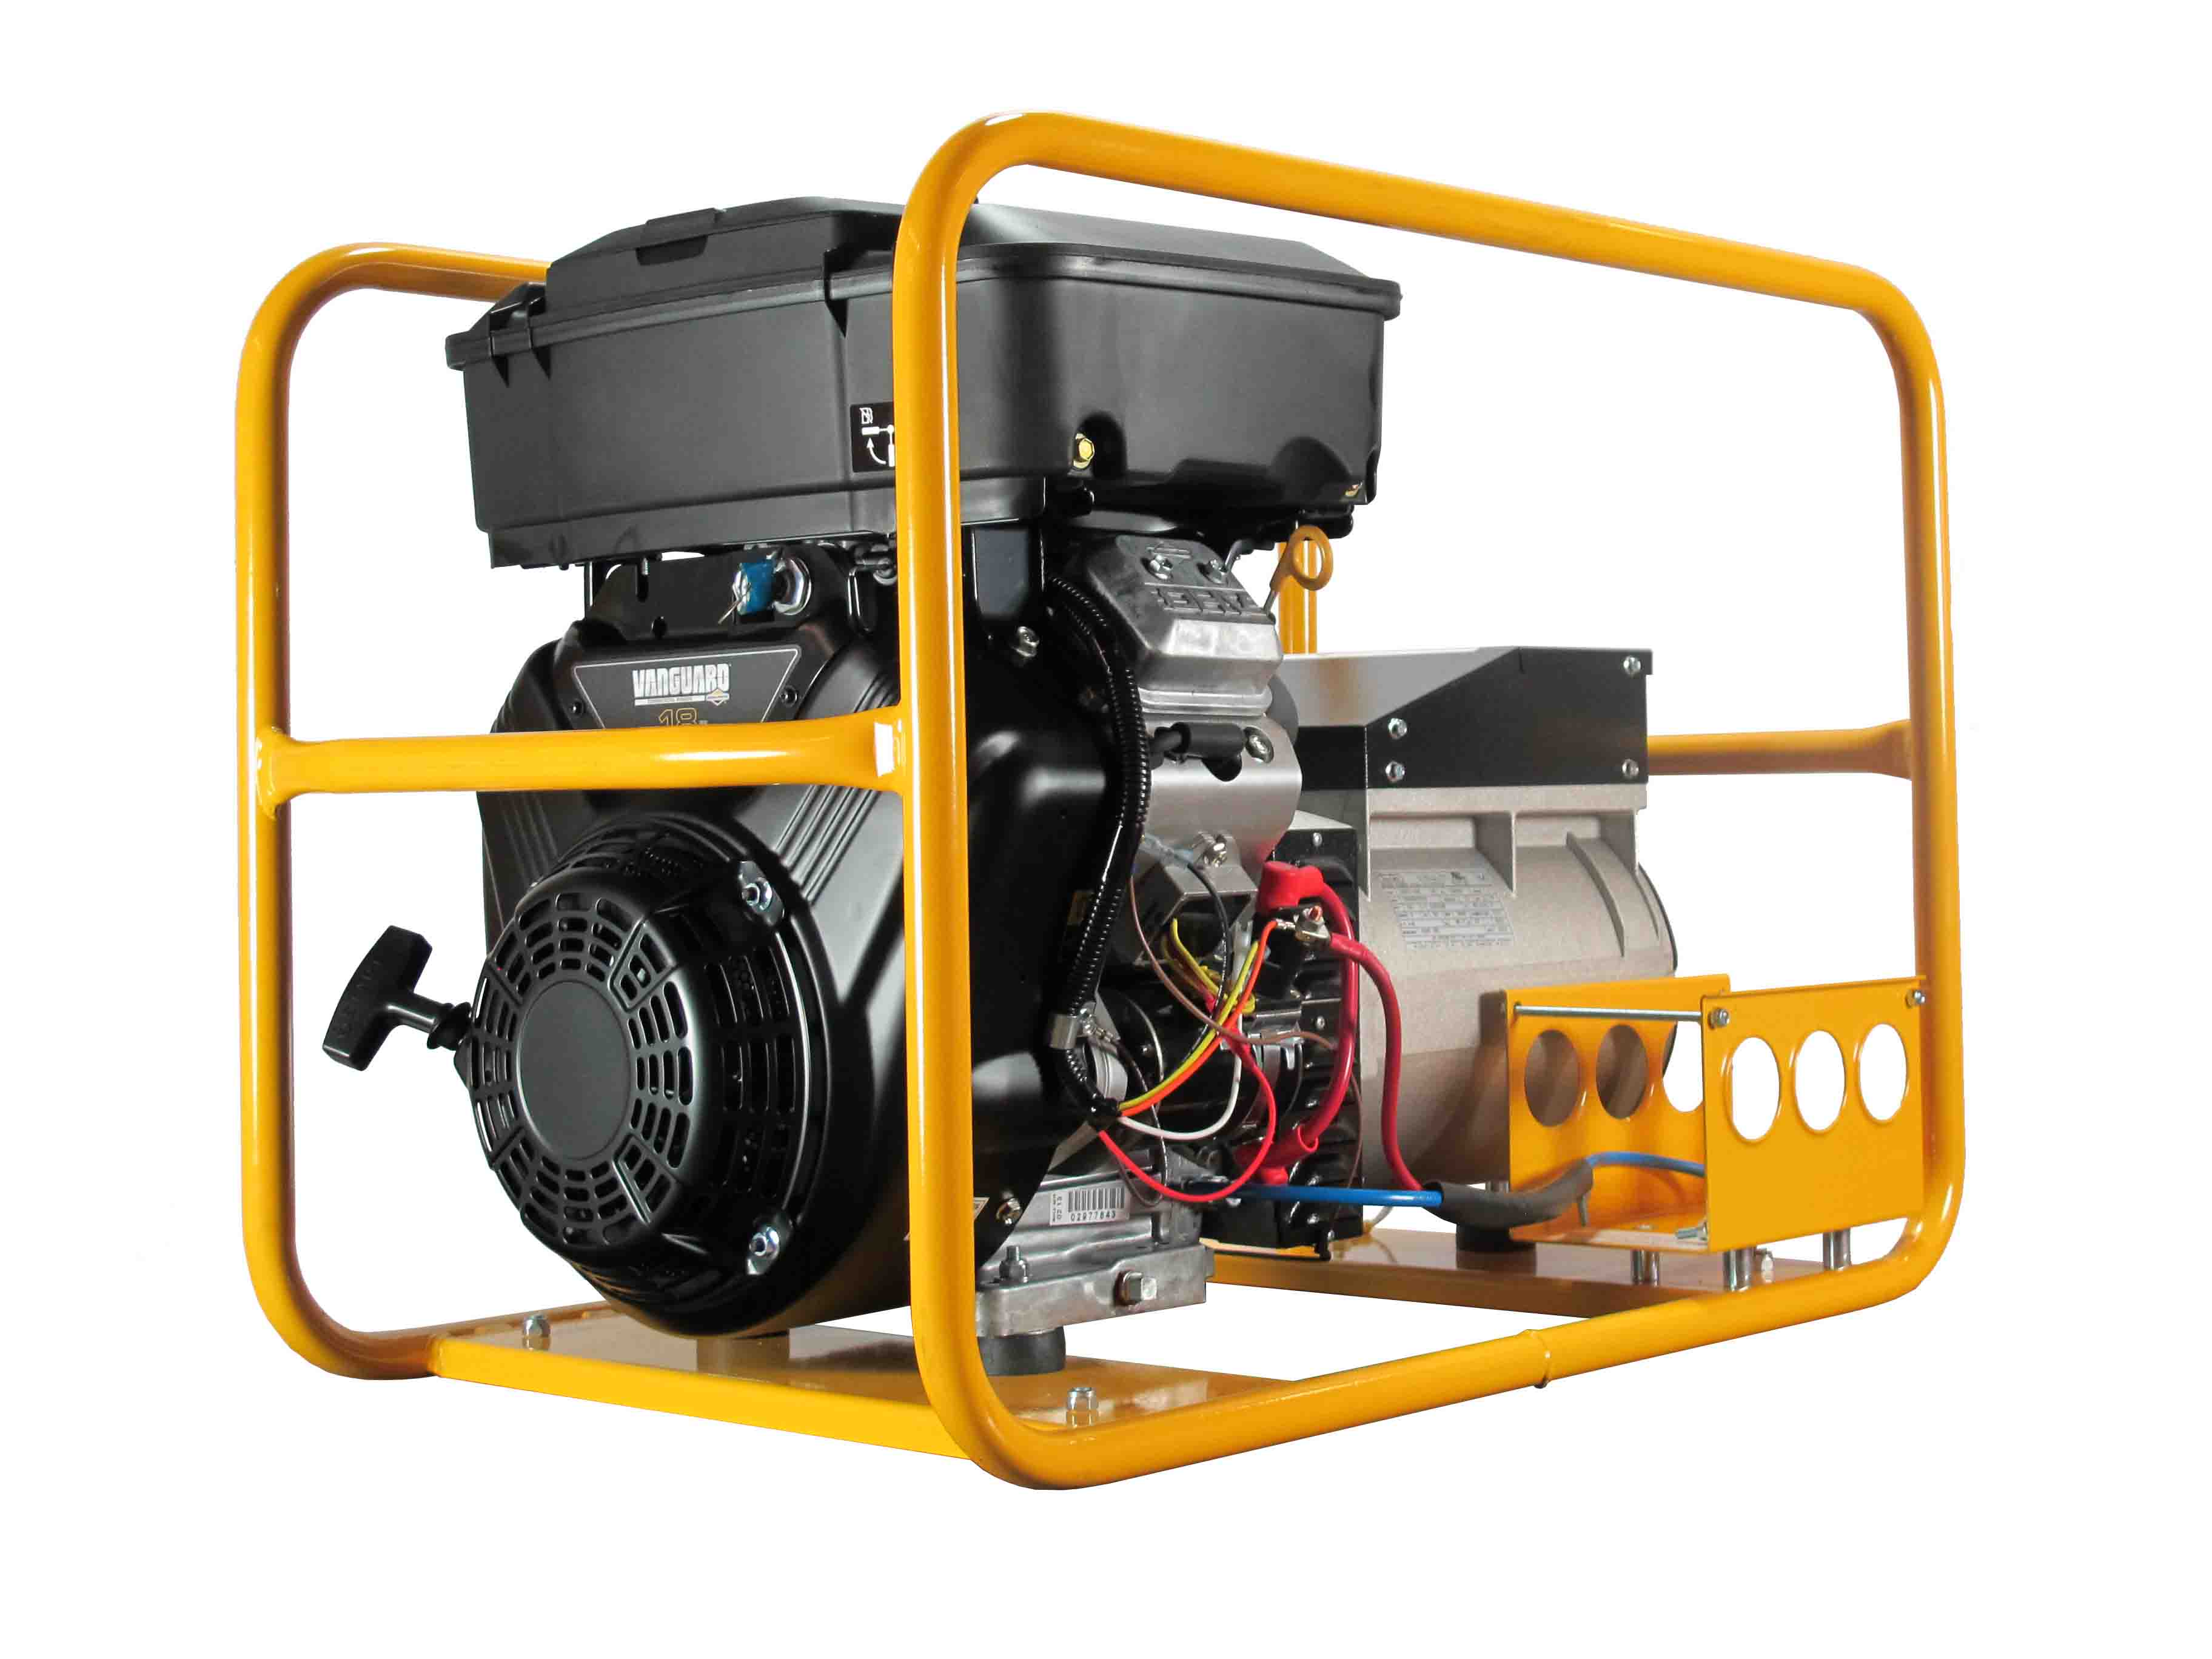 PB110E – 9 000W Generator with battery